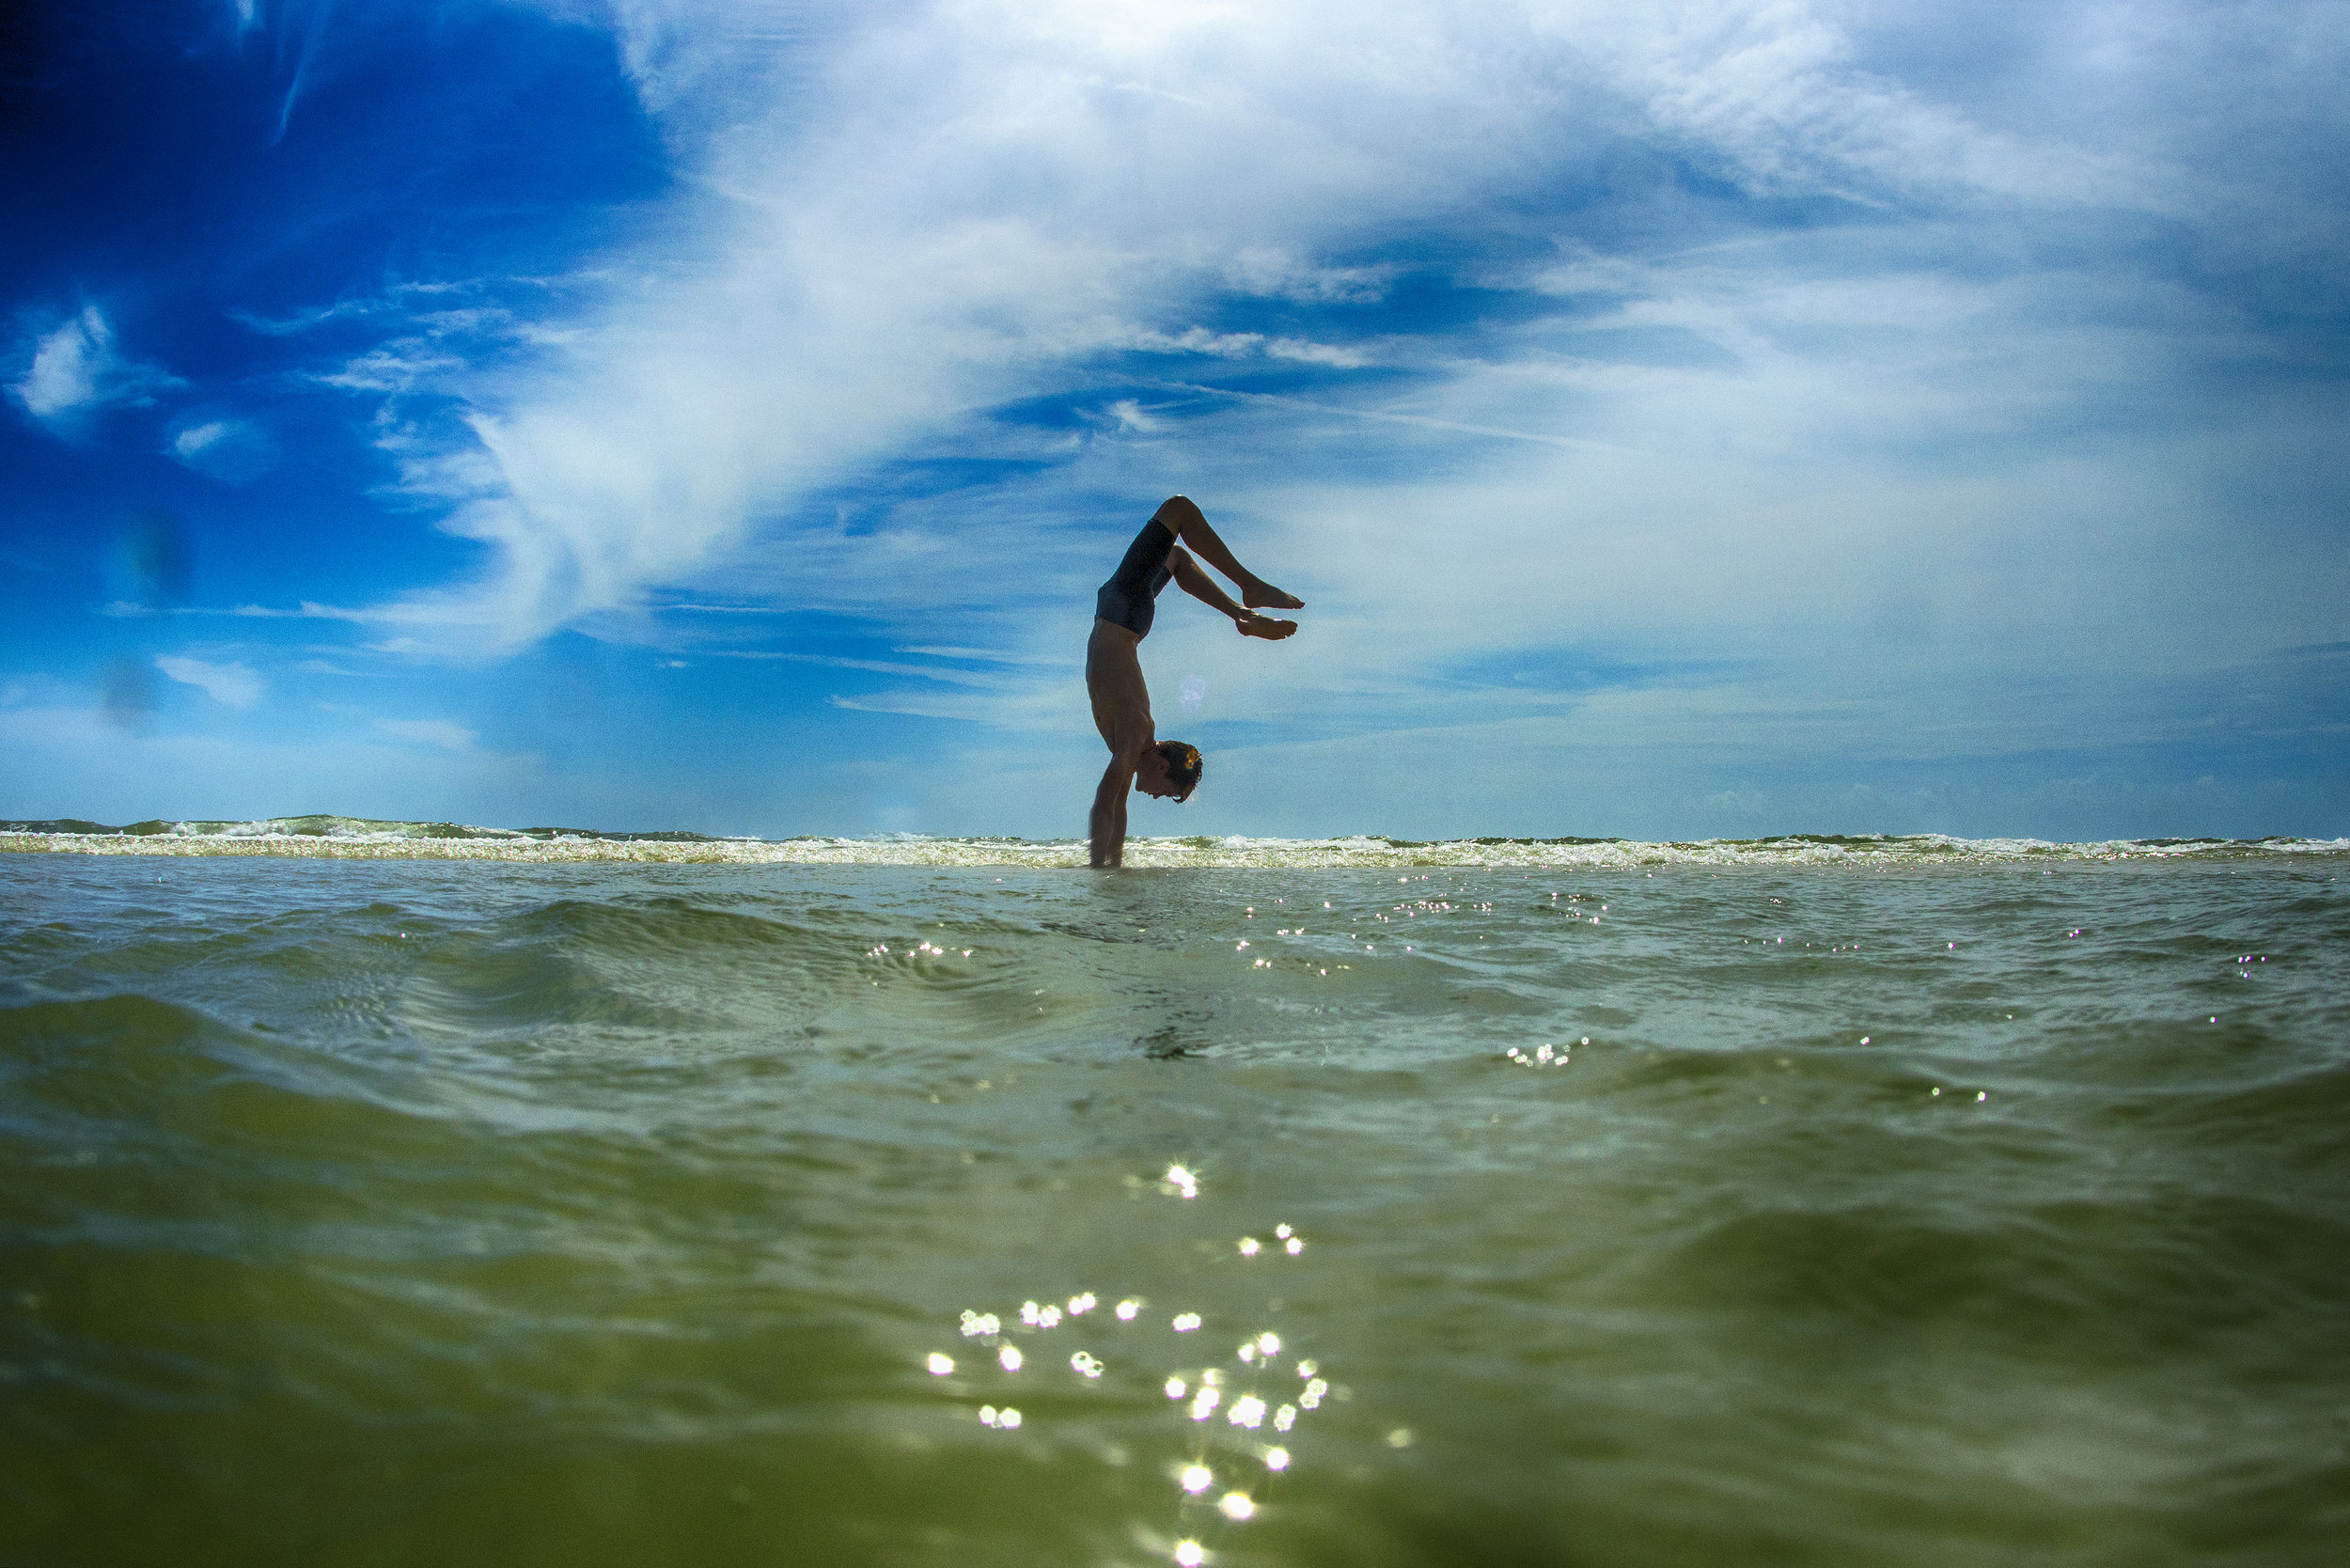 Zane hitting the hand stand in a shallow pool at New Smyrna Inlet.